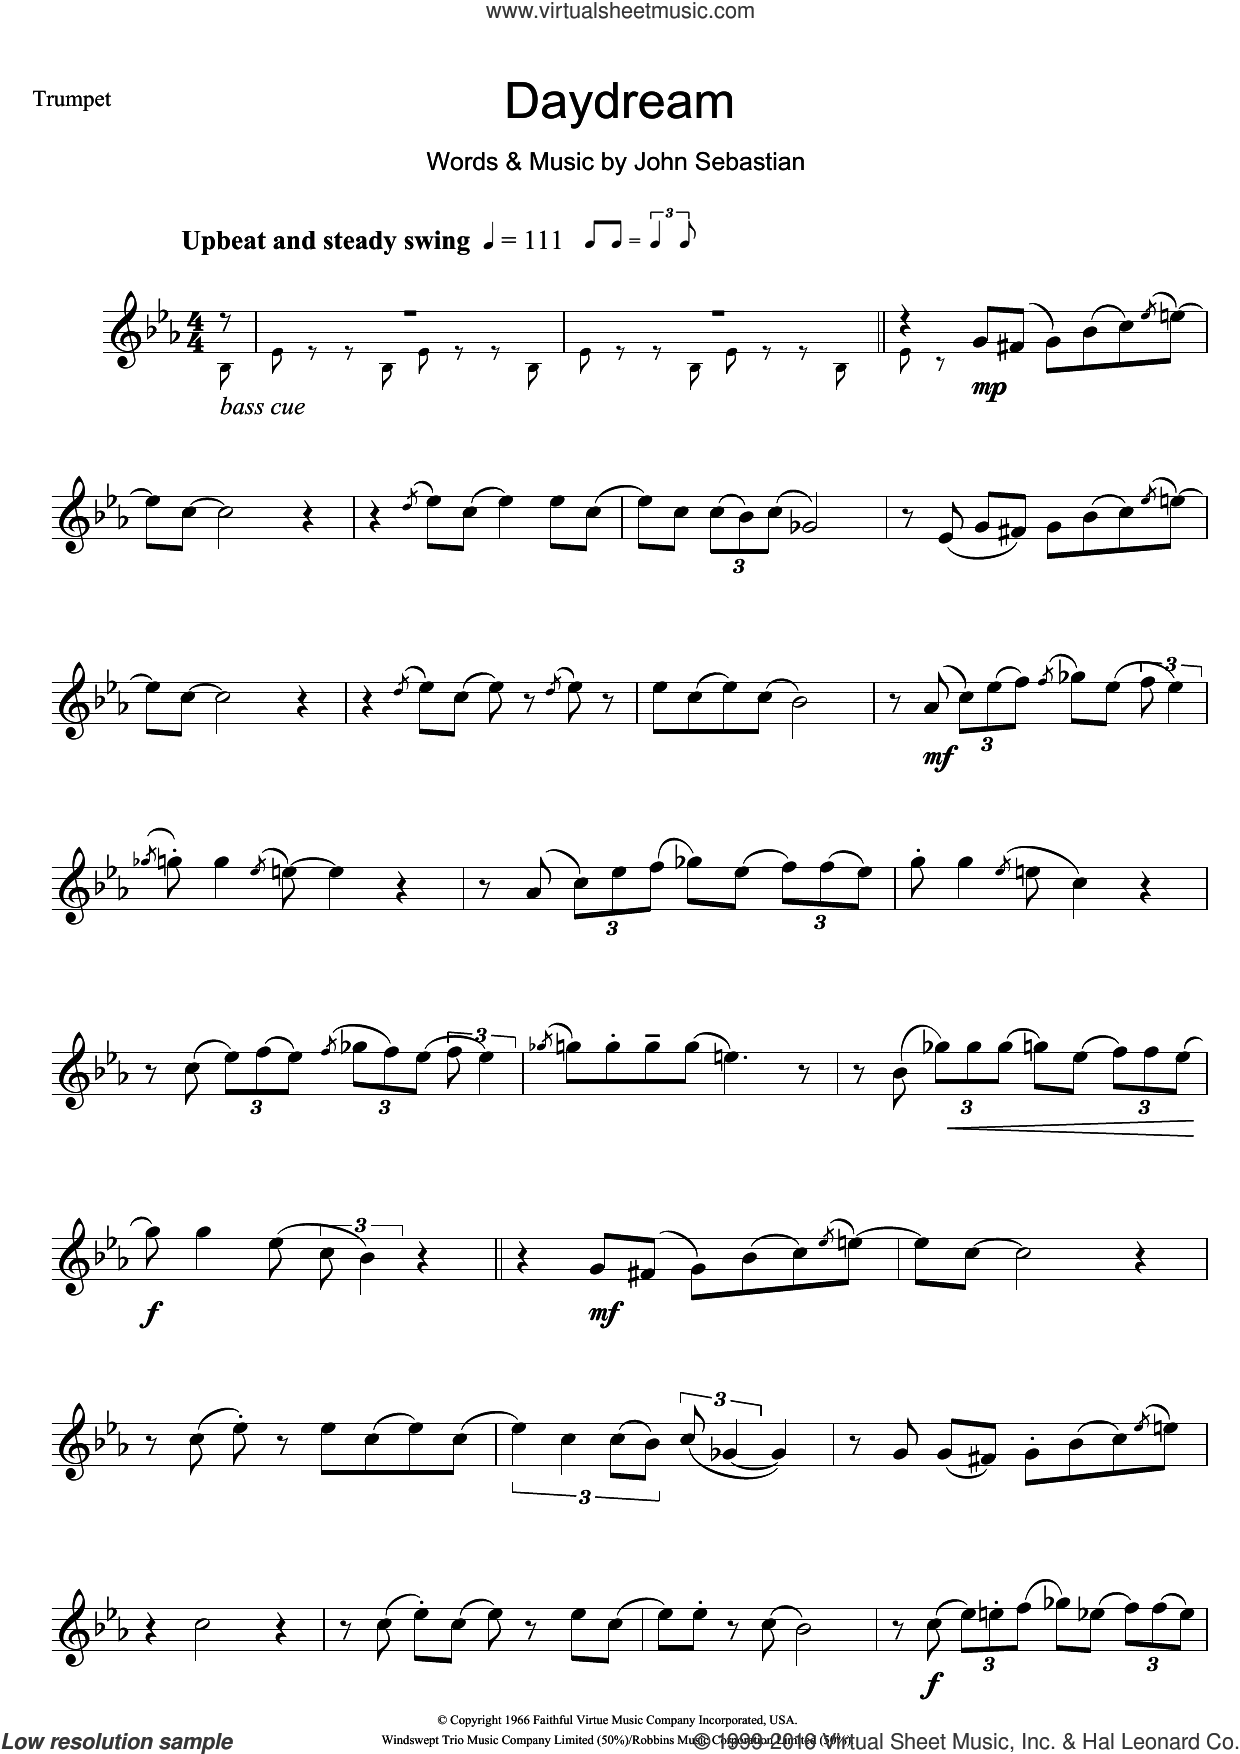 Daydream sheet music for trumpet solo by The Lovin' Spoonful and John Sebastian, intermediate